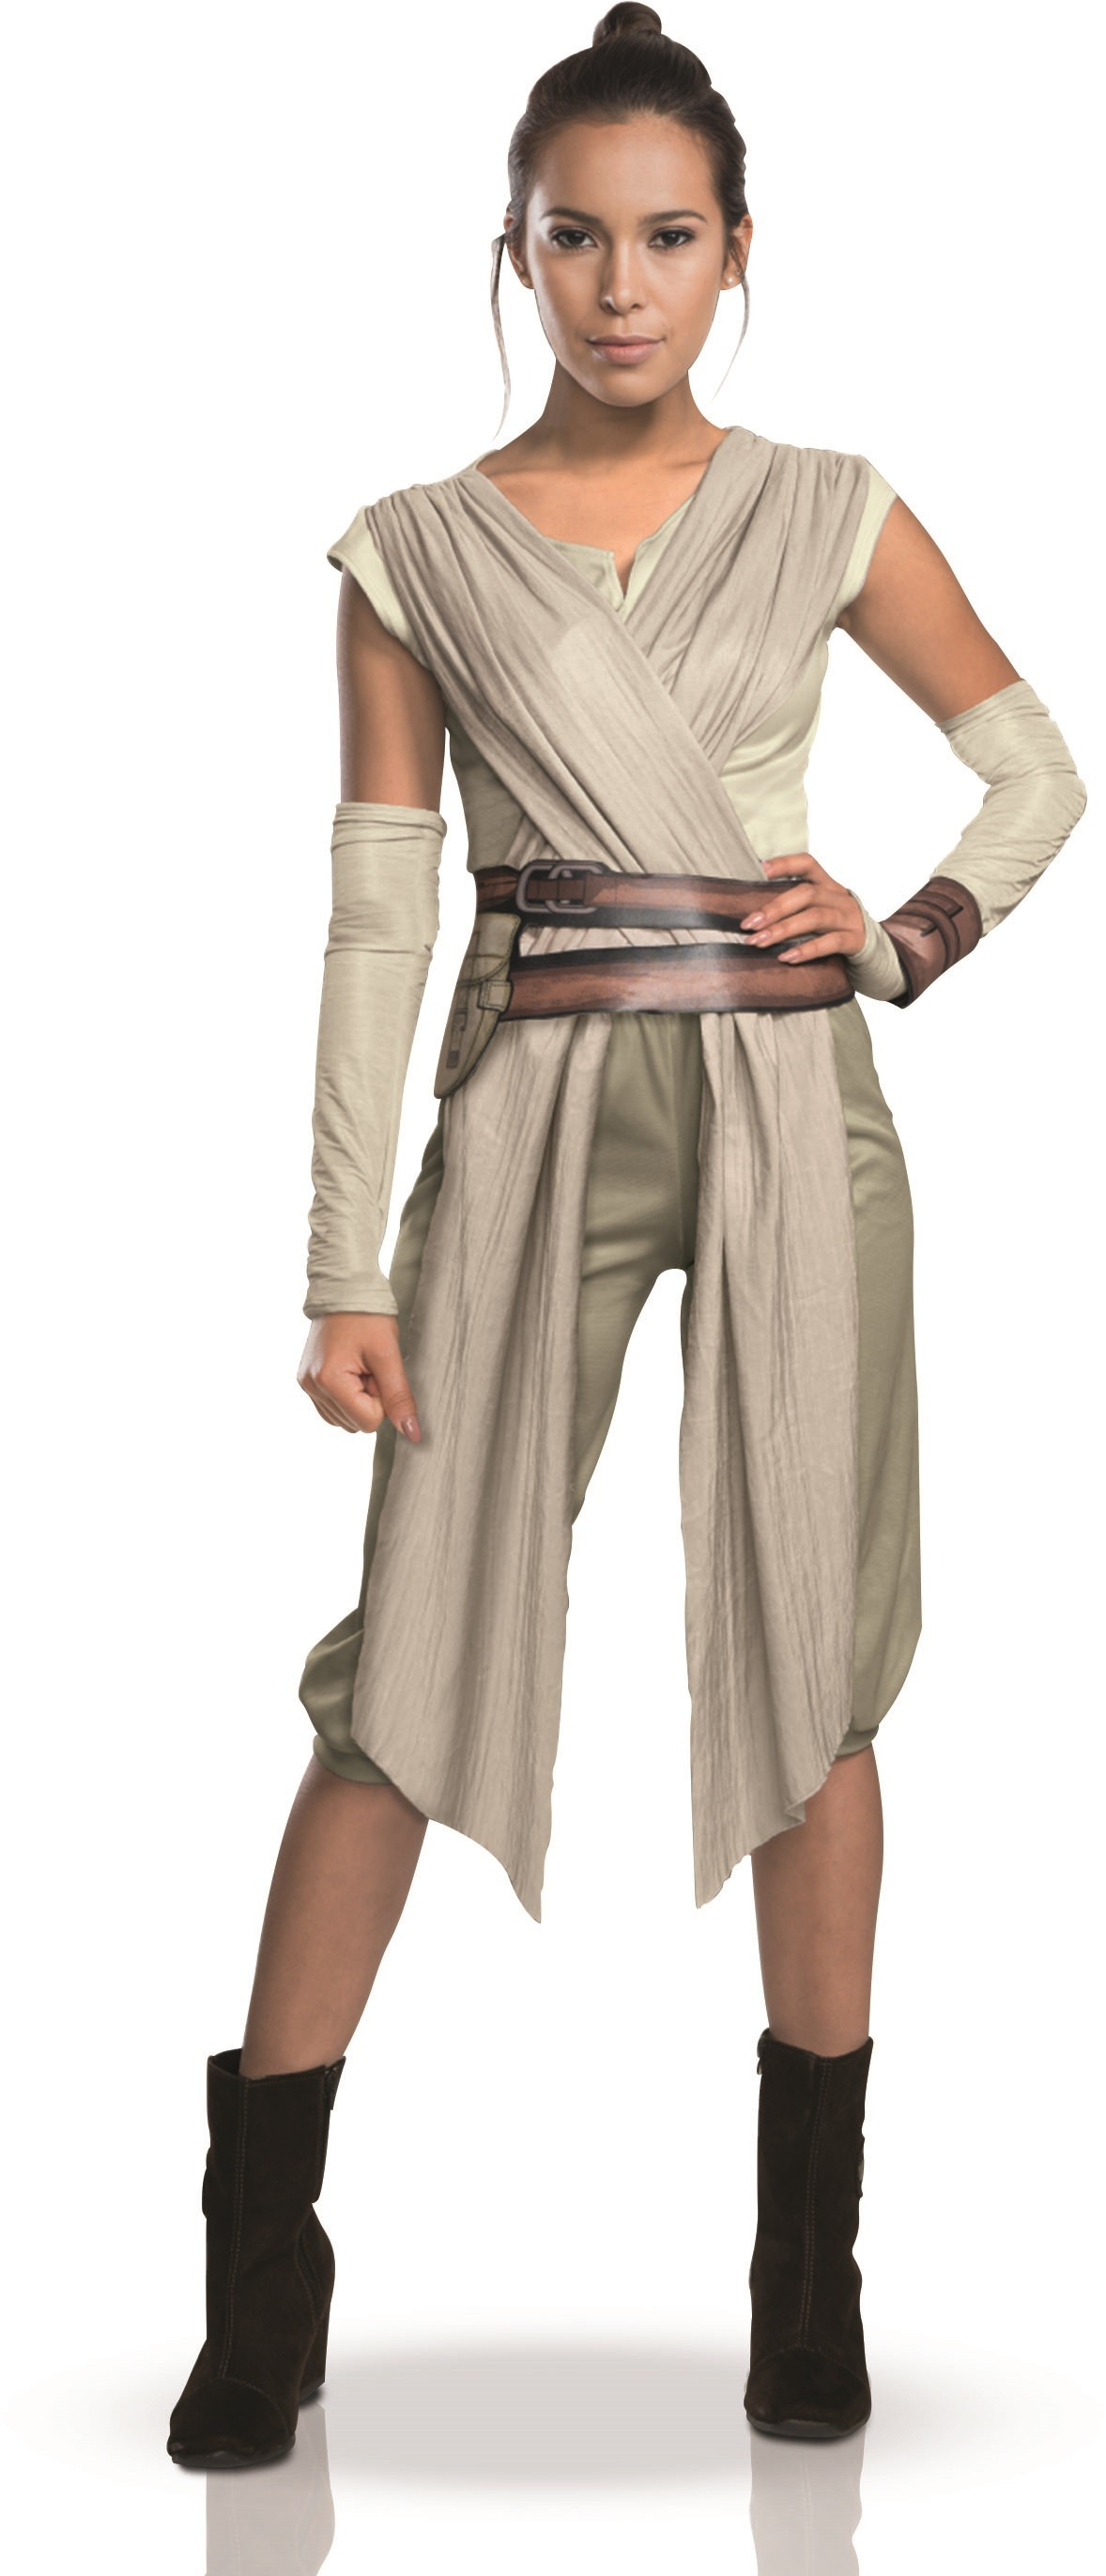 how to make jedi outfit